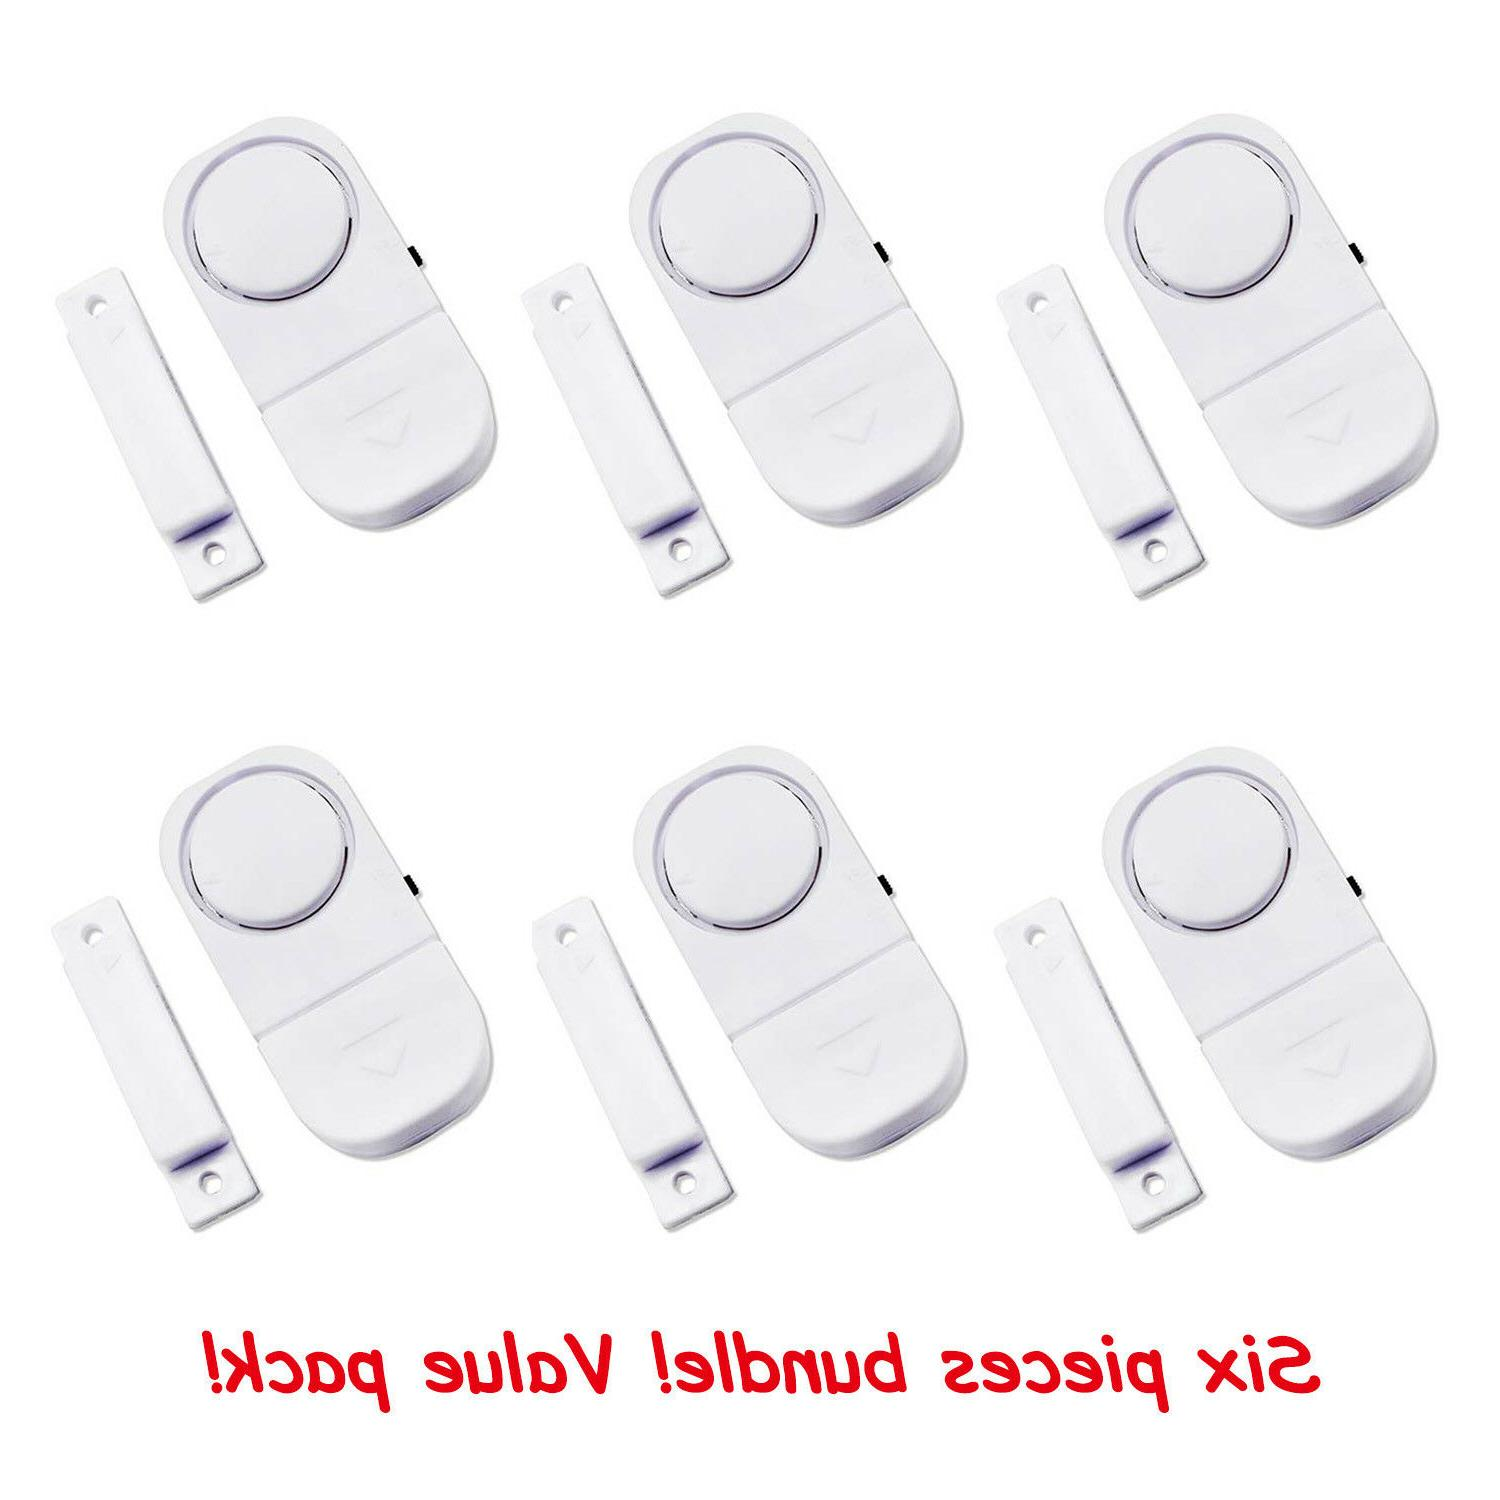 2-10 PC DOOR BATTERY HOME SYSTEM SWITCH